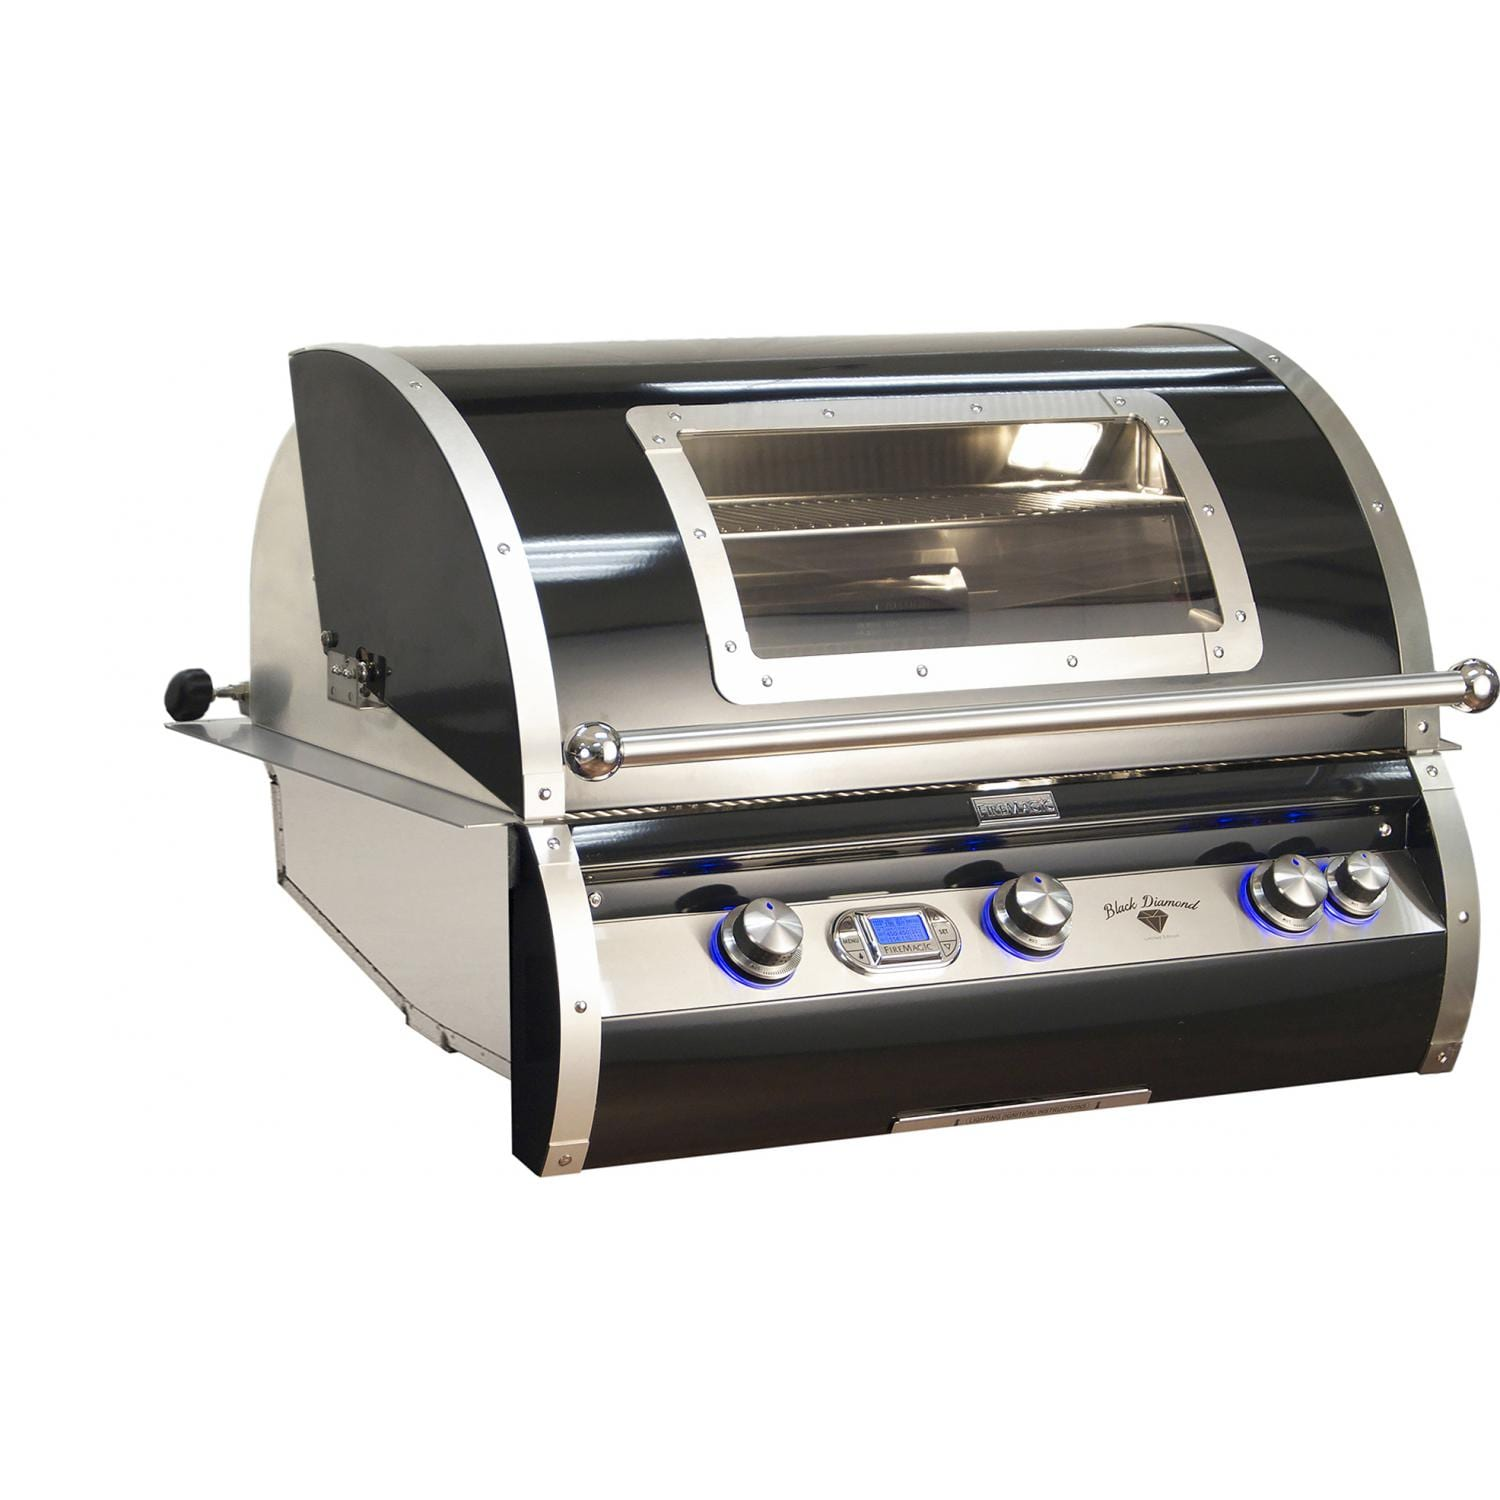 Fire Magic Echelon Black Diamond H790i Natural Gas Grill